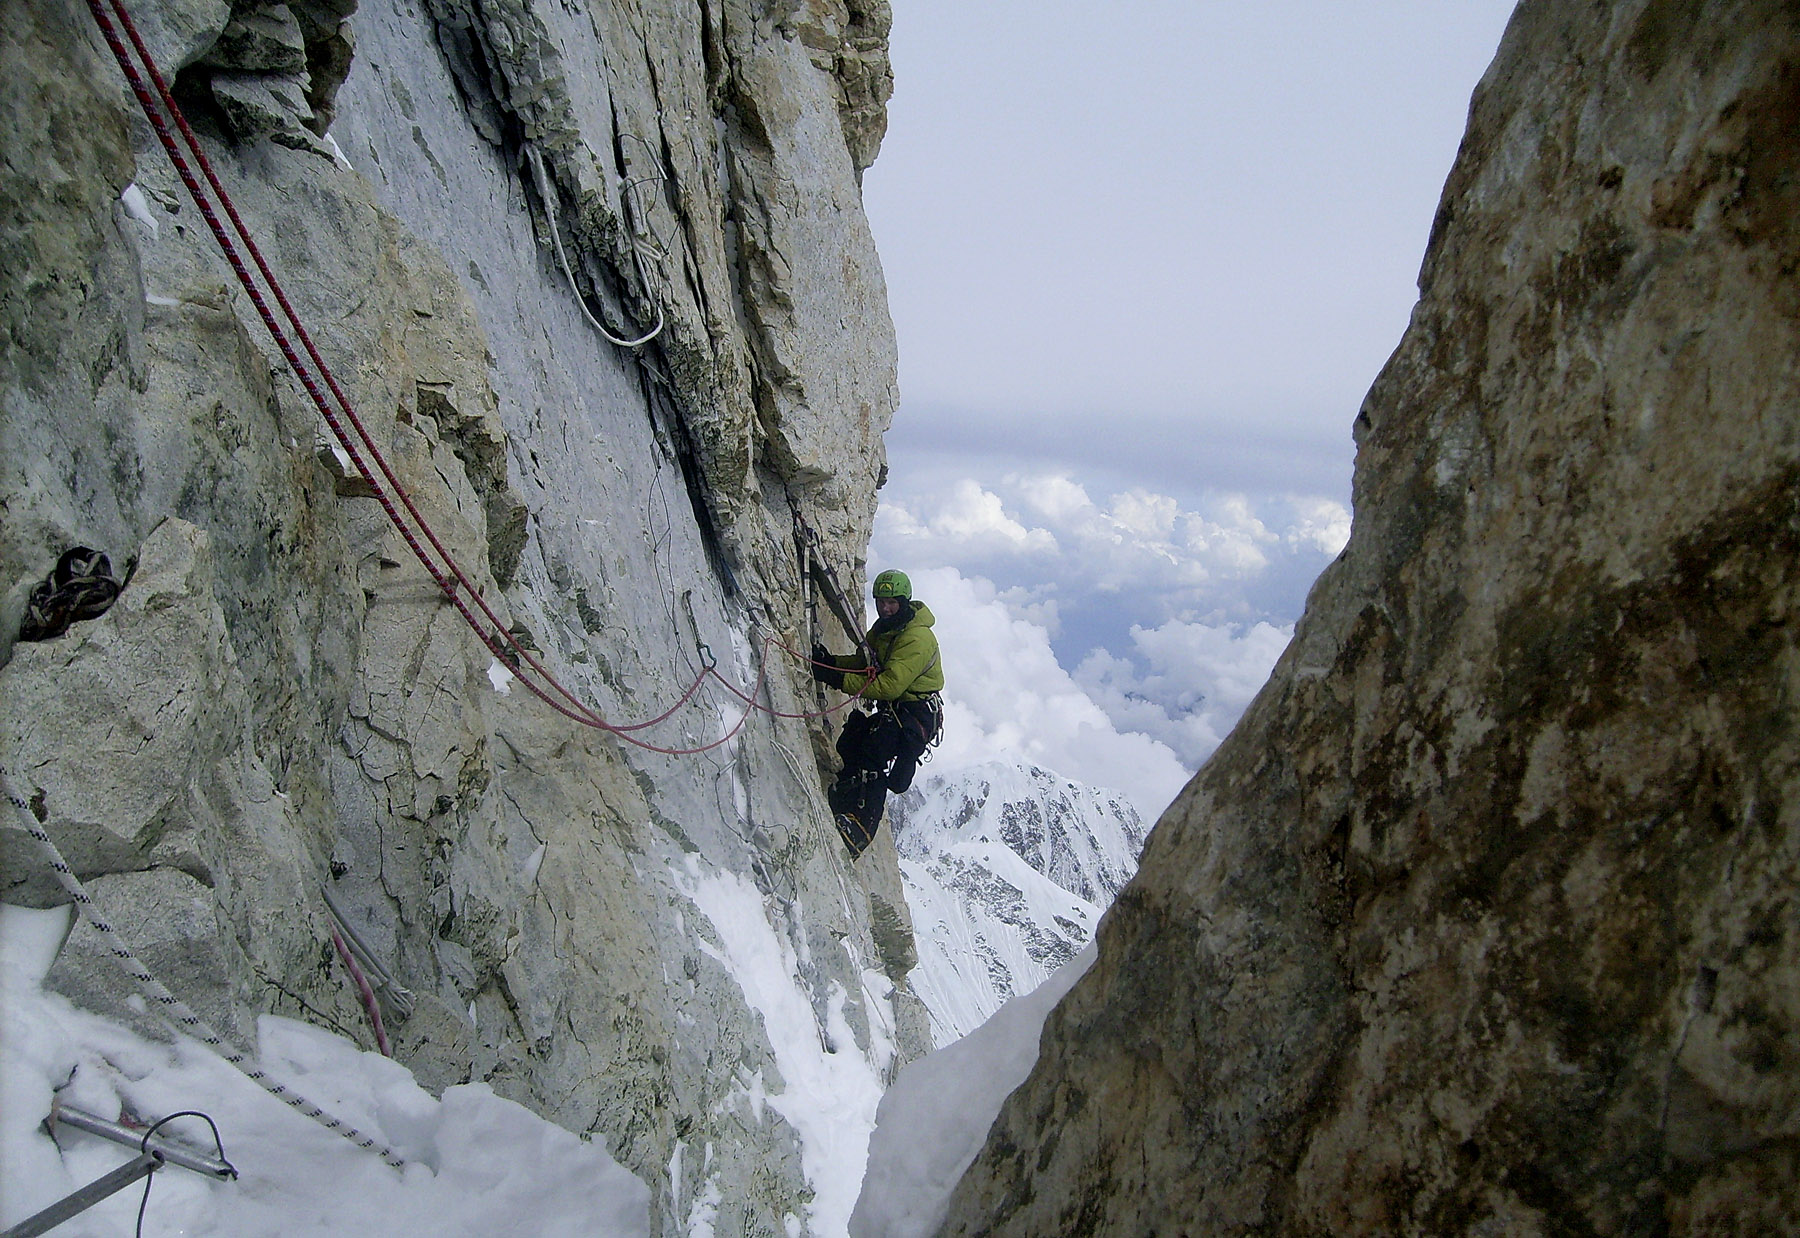 Near the end of the crux pitch at 7,700m on Makalu's French Ridge.